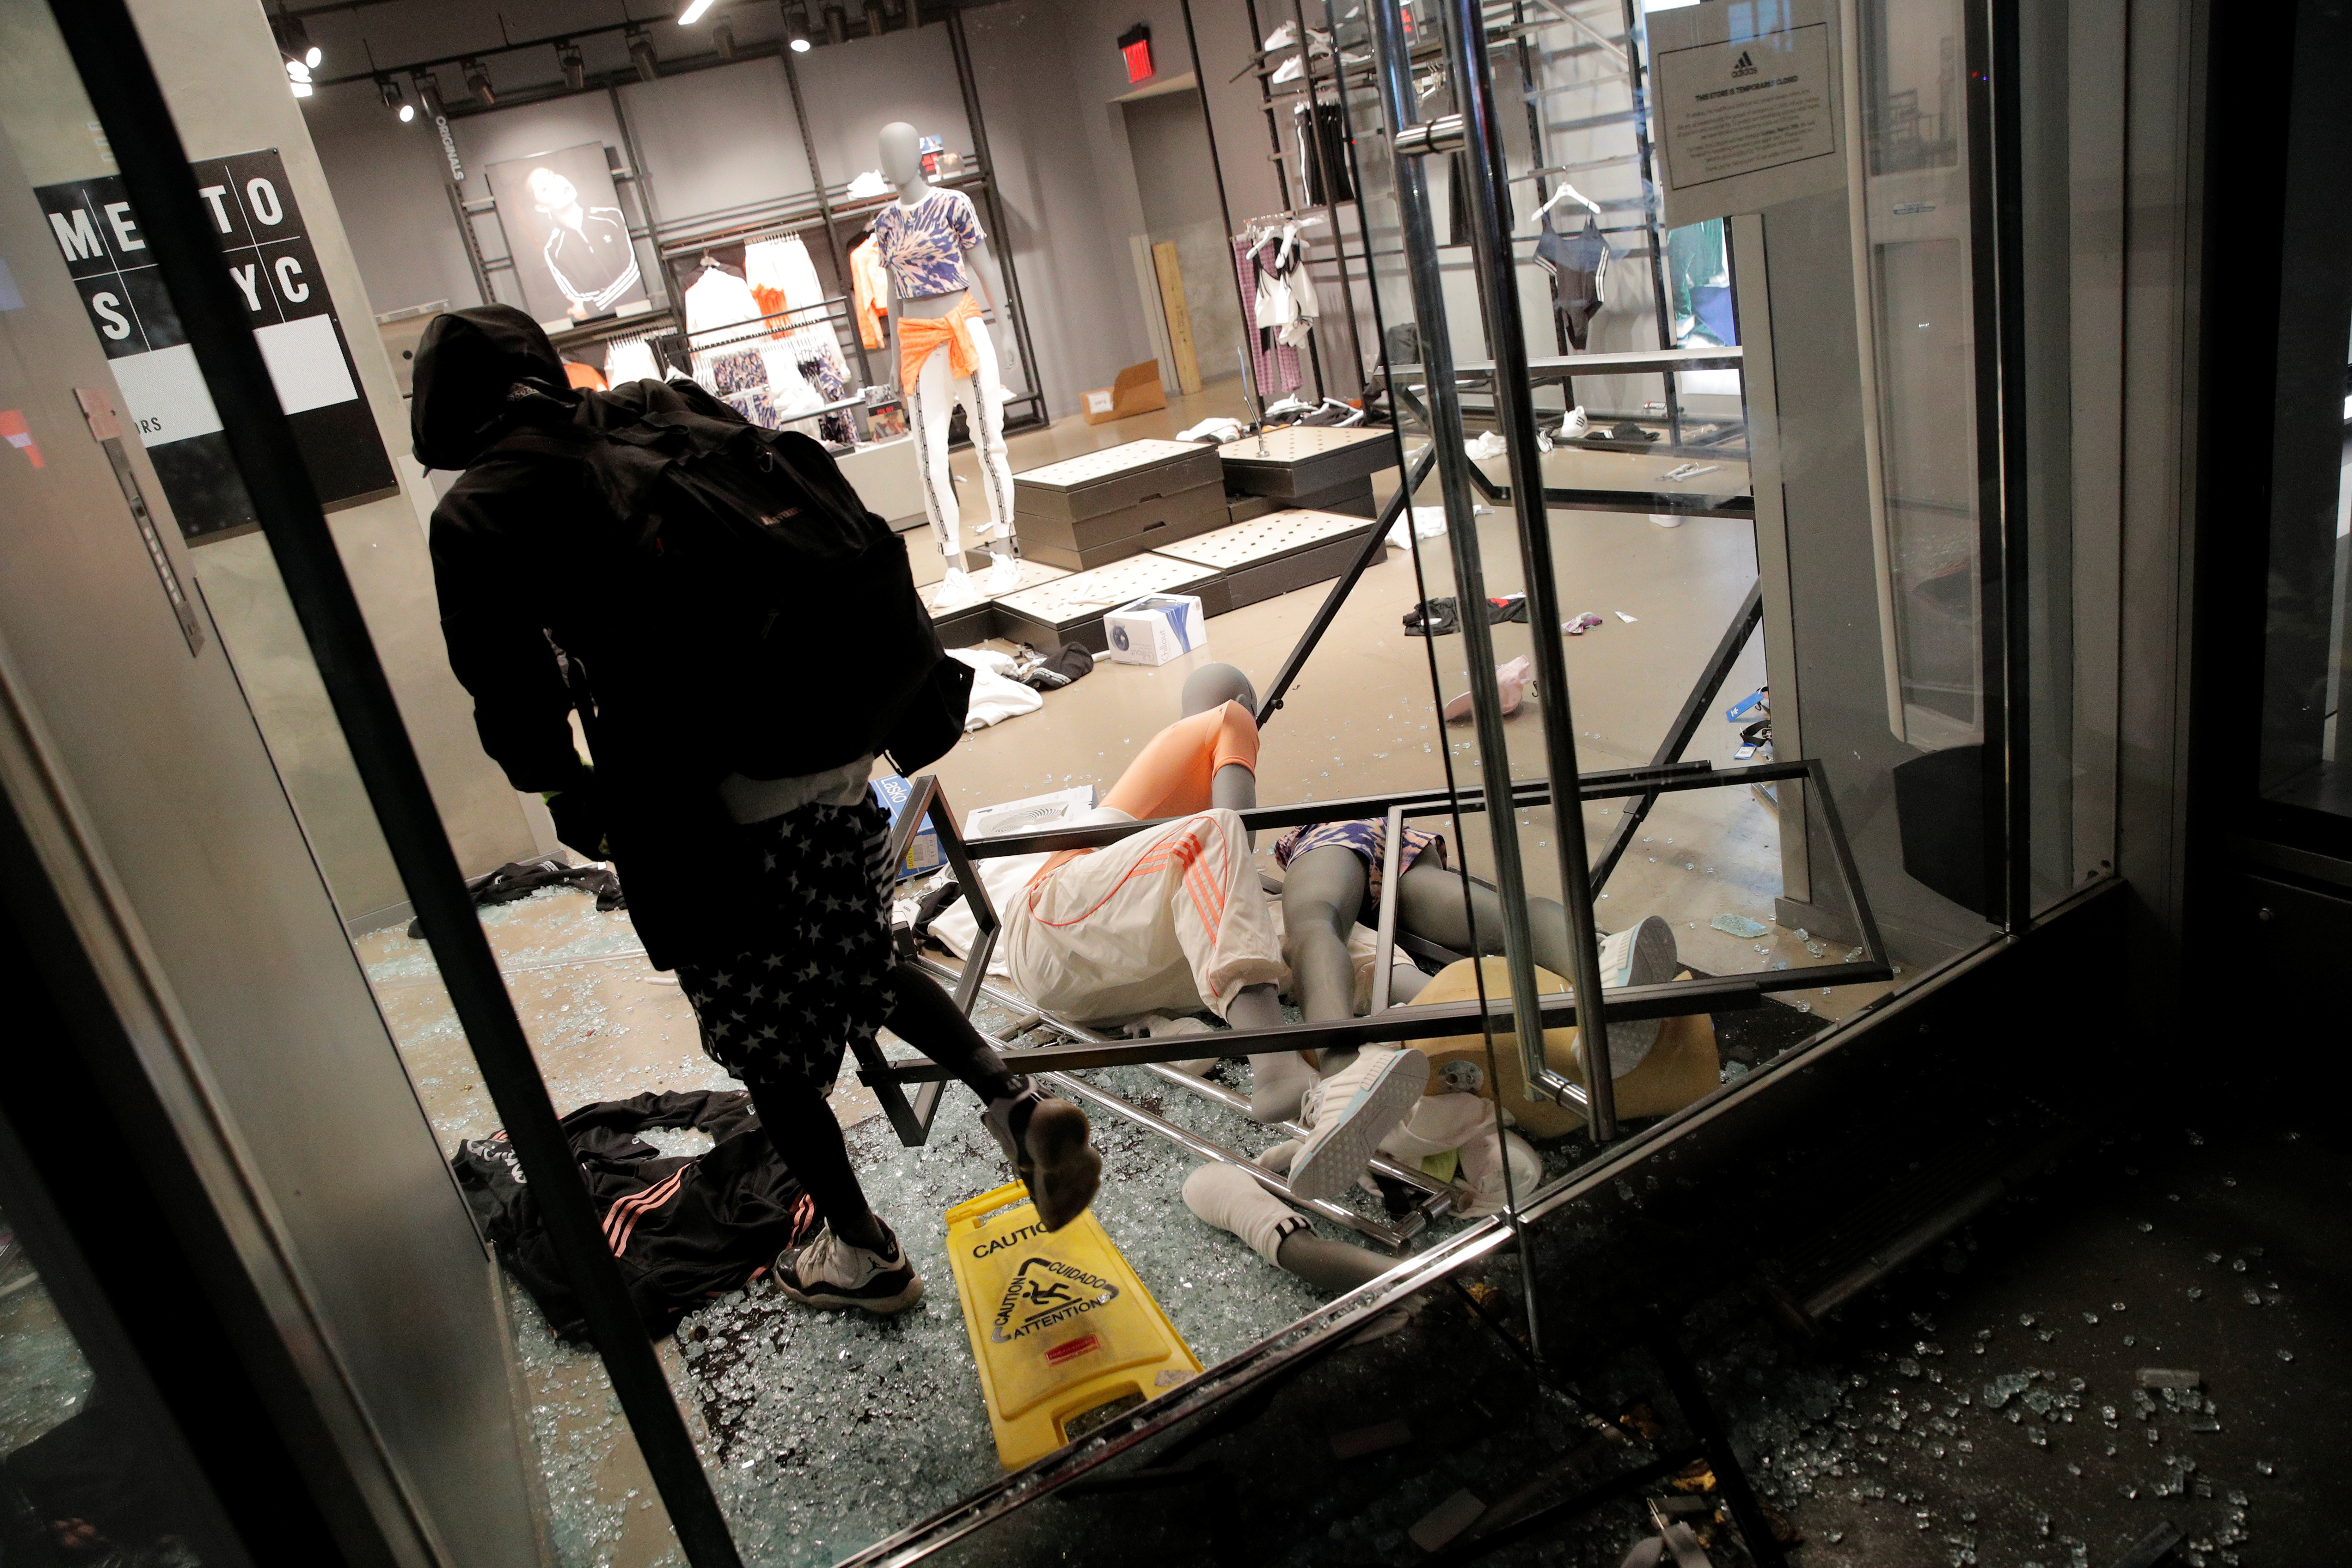 A person walks inside a damaged shop during a protest against the death in Minneapolis police custody of George Floyd, in Manhattan, New York, U.S., May 30, 2020. REUTERS/Andrew Kelly - RC2FZG94PL81